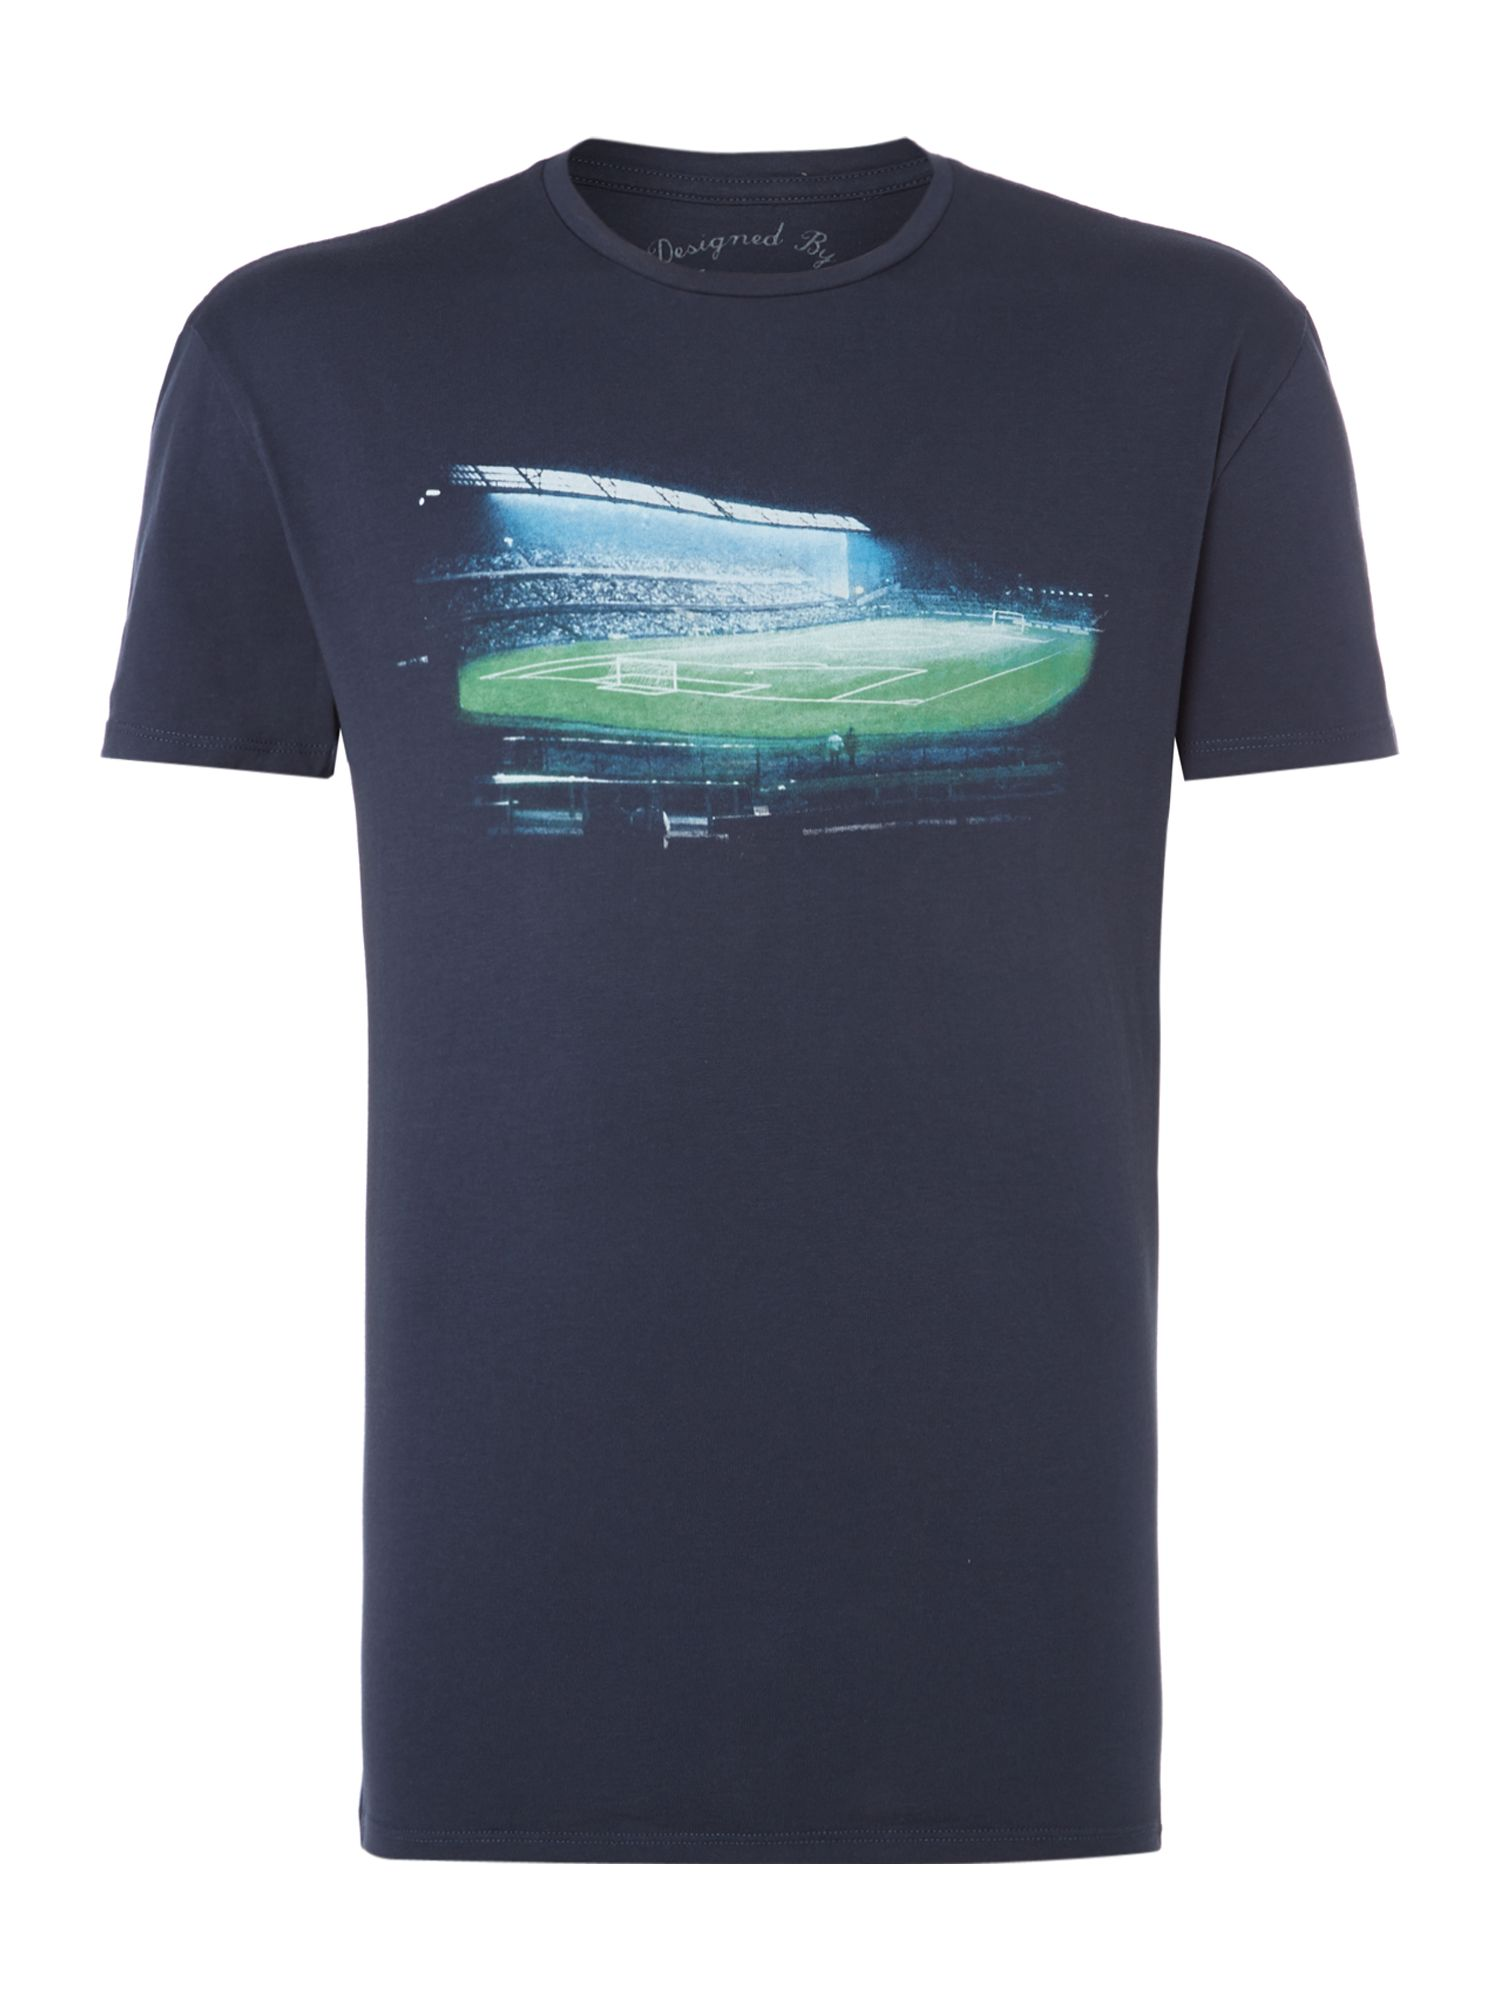 football stadium graphic tee